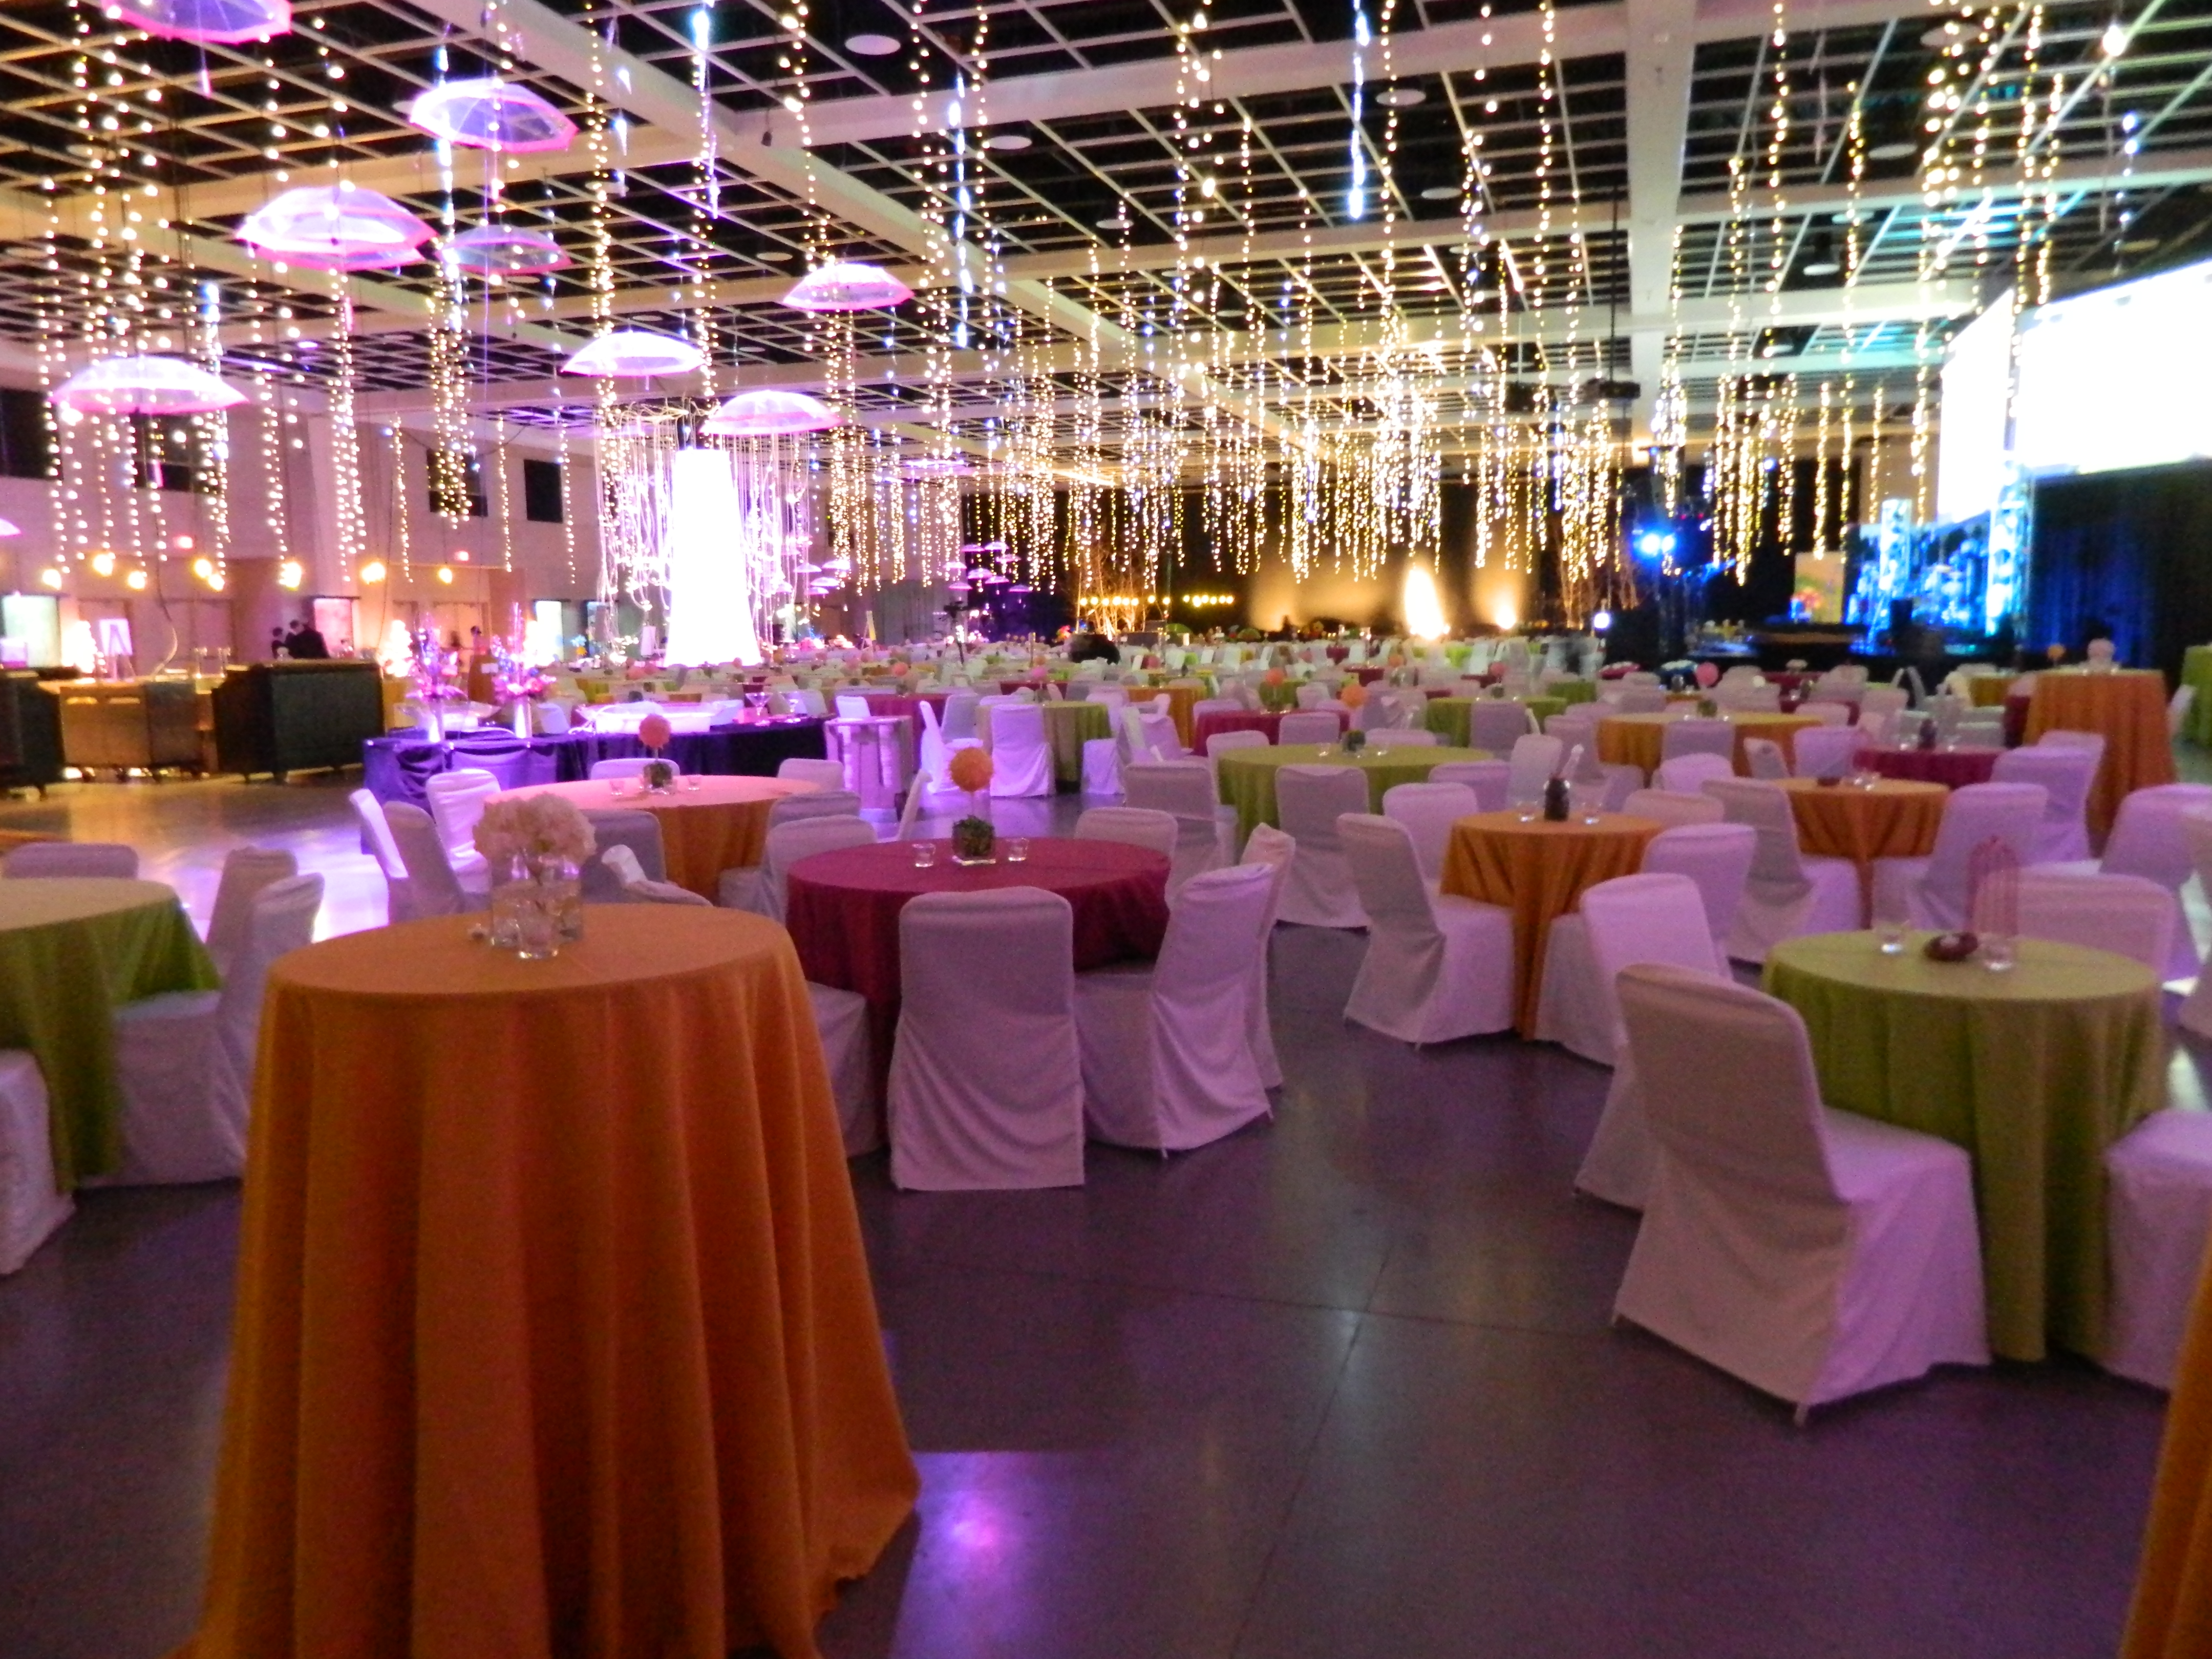 Hall decorated with hanging lights and draped tables and chairs for Holly Ball 2012